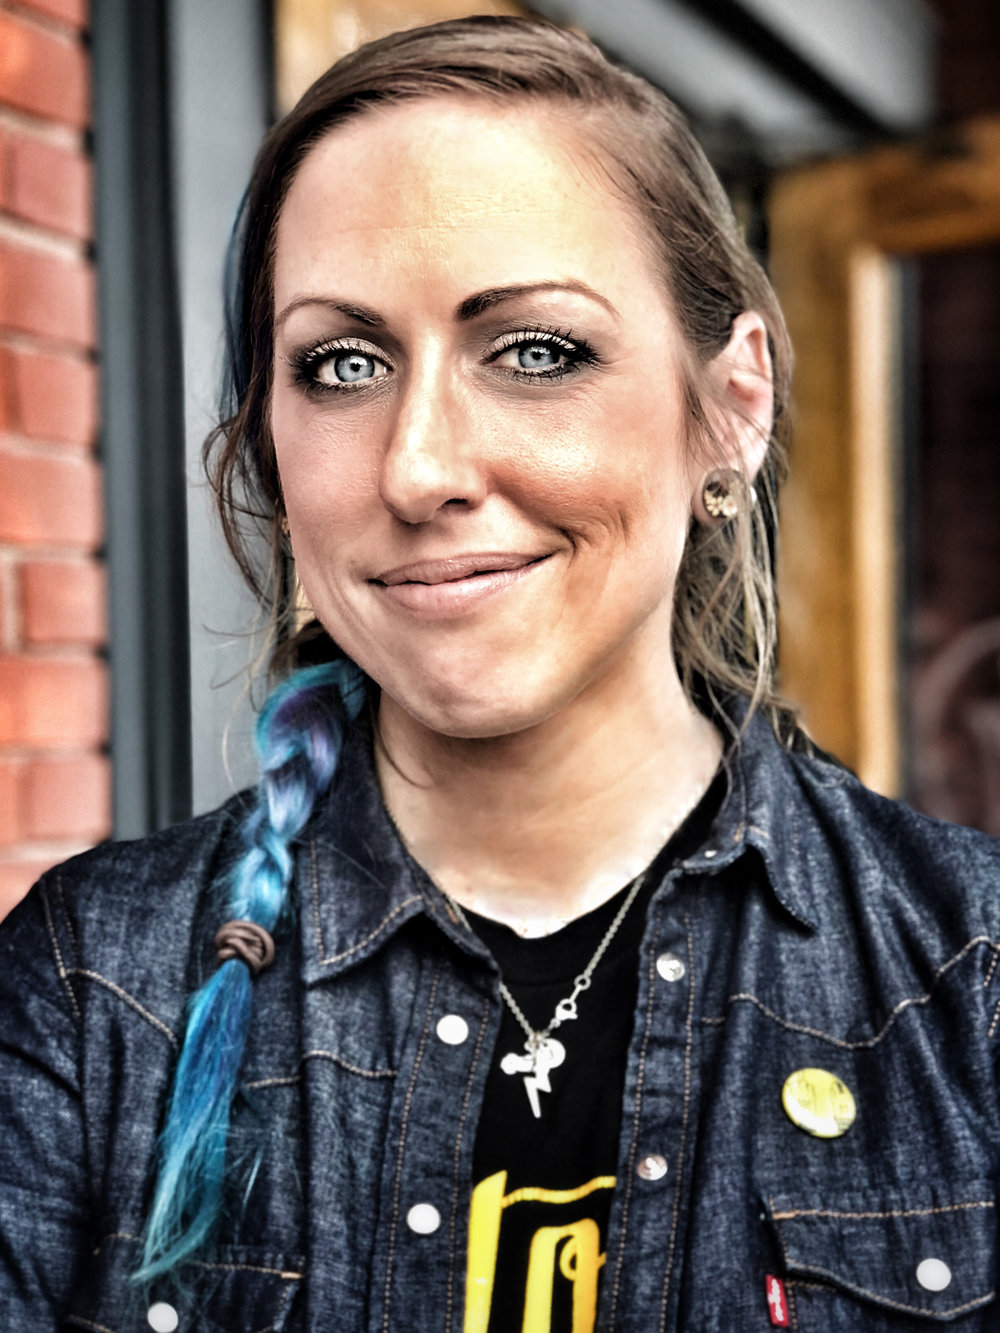 Jen Sikes: She lives in Minneapolis and rides an Iron 883. She rides with the twin city Lita's.